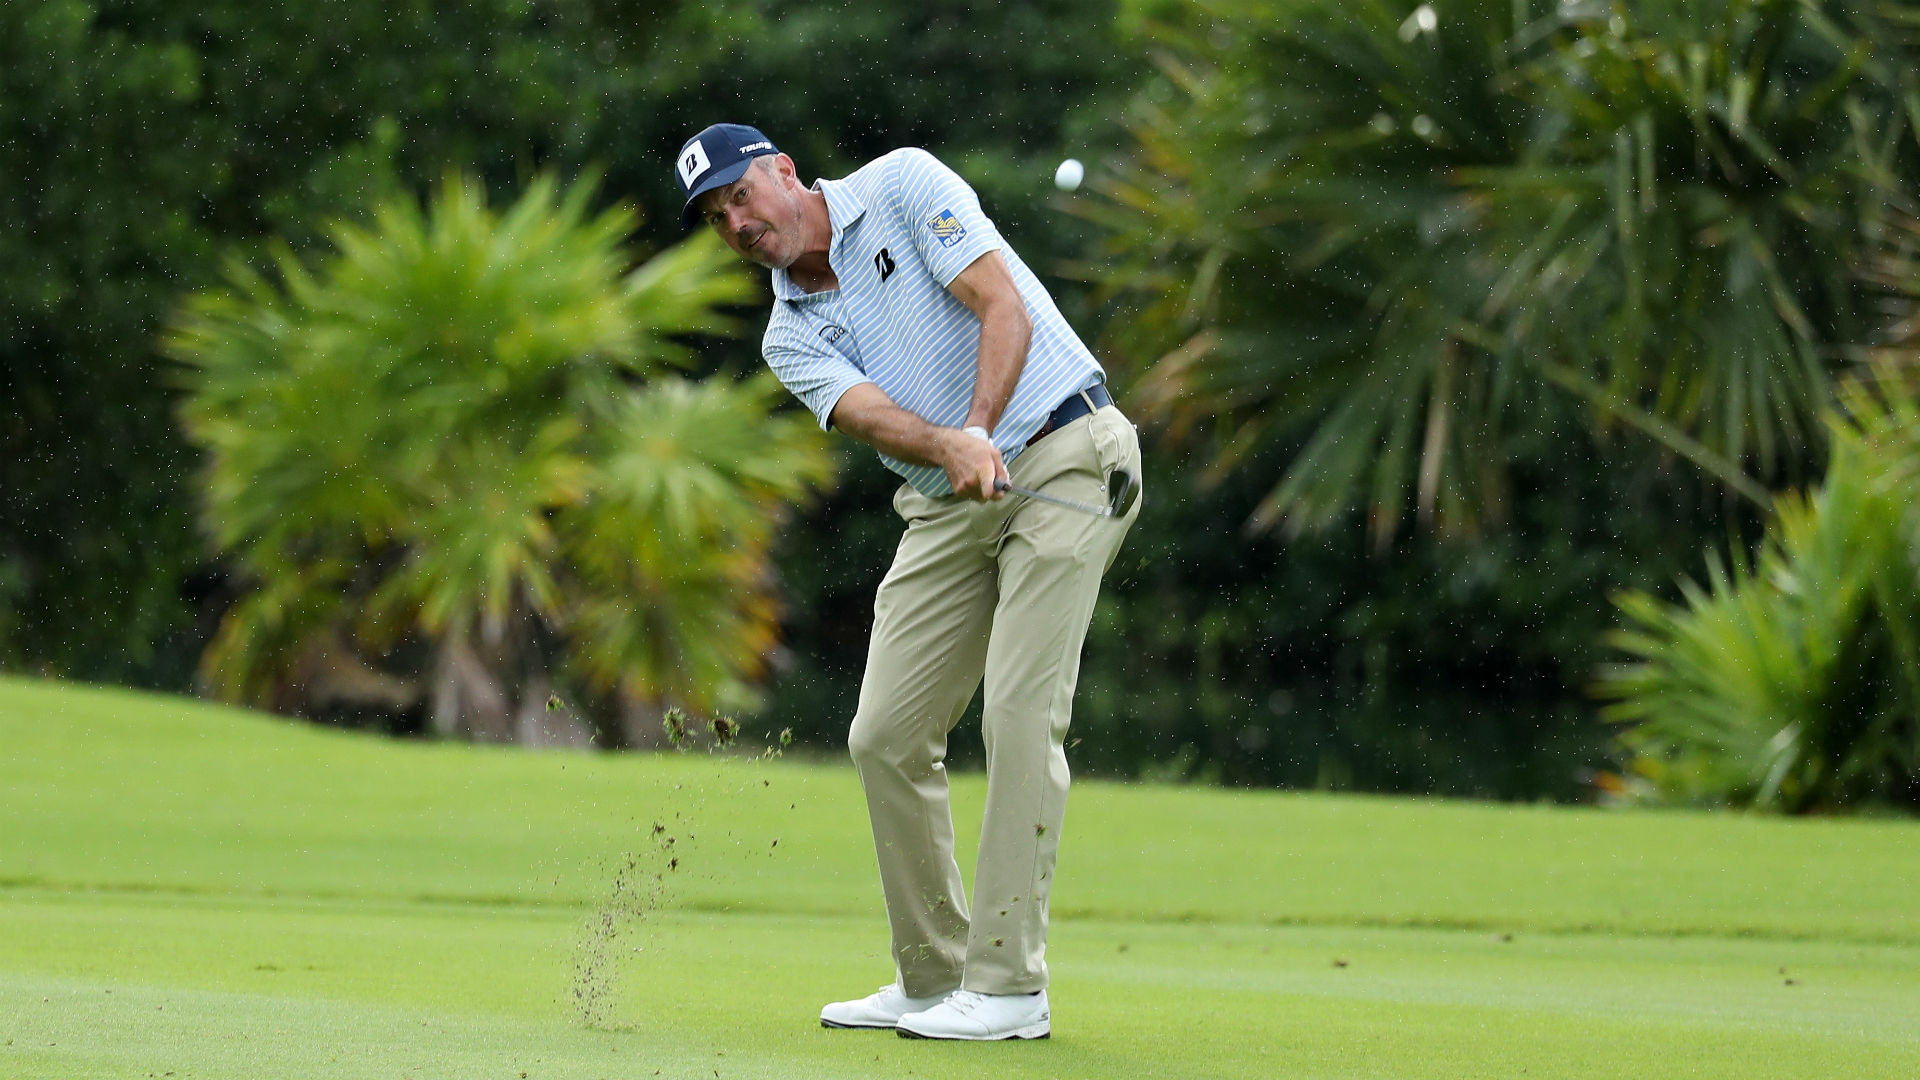 Kuchar Takes Lead Over Champ In Mexico